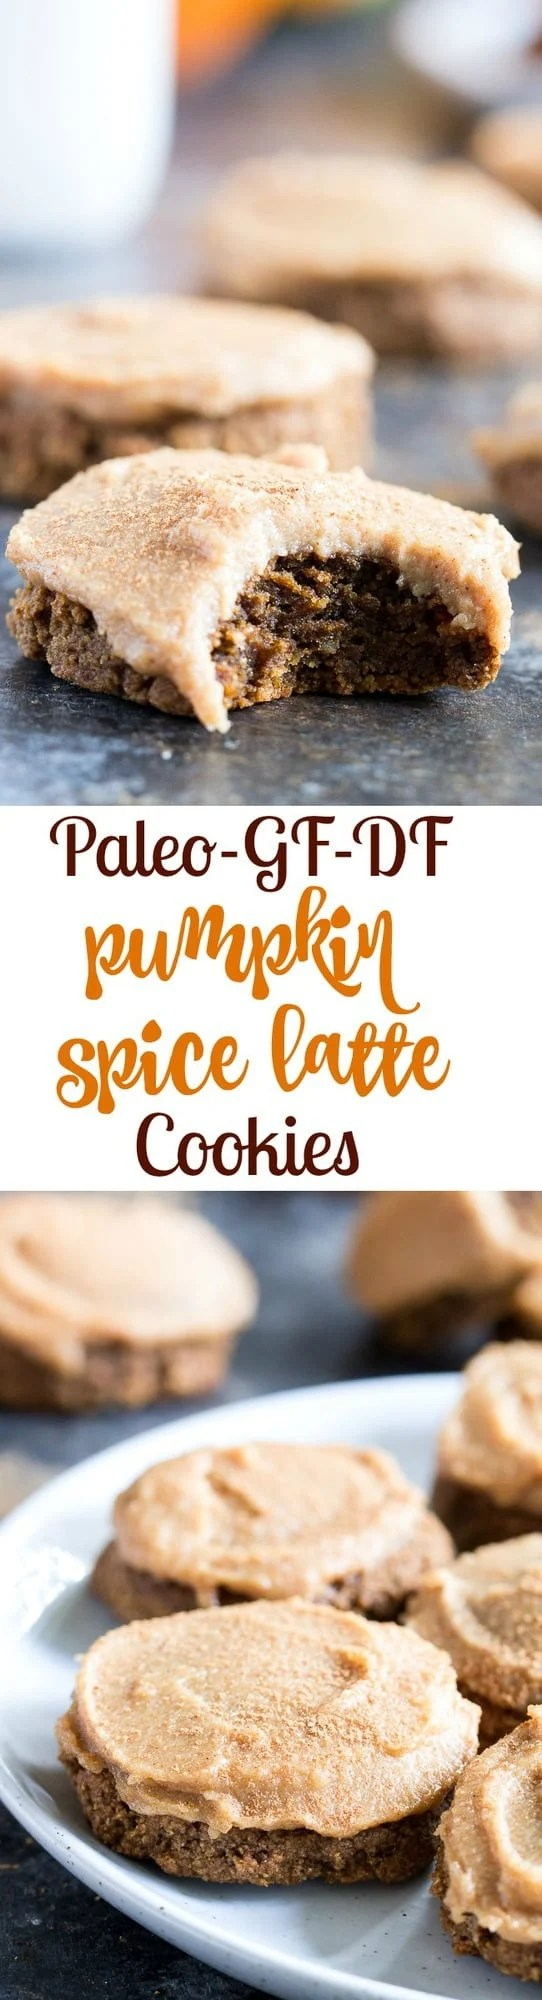 "These Paleo Pumpkin Spice Latte Cookies have lots of sweet spice and are topped with a maple cinnamon cashew ""cream cheese"" frosting! Soft and chewy, gluten-free, dairy-free, vegan option"